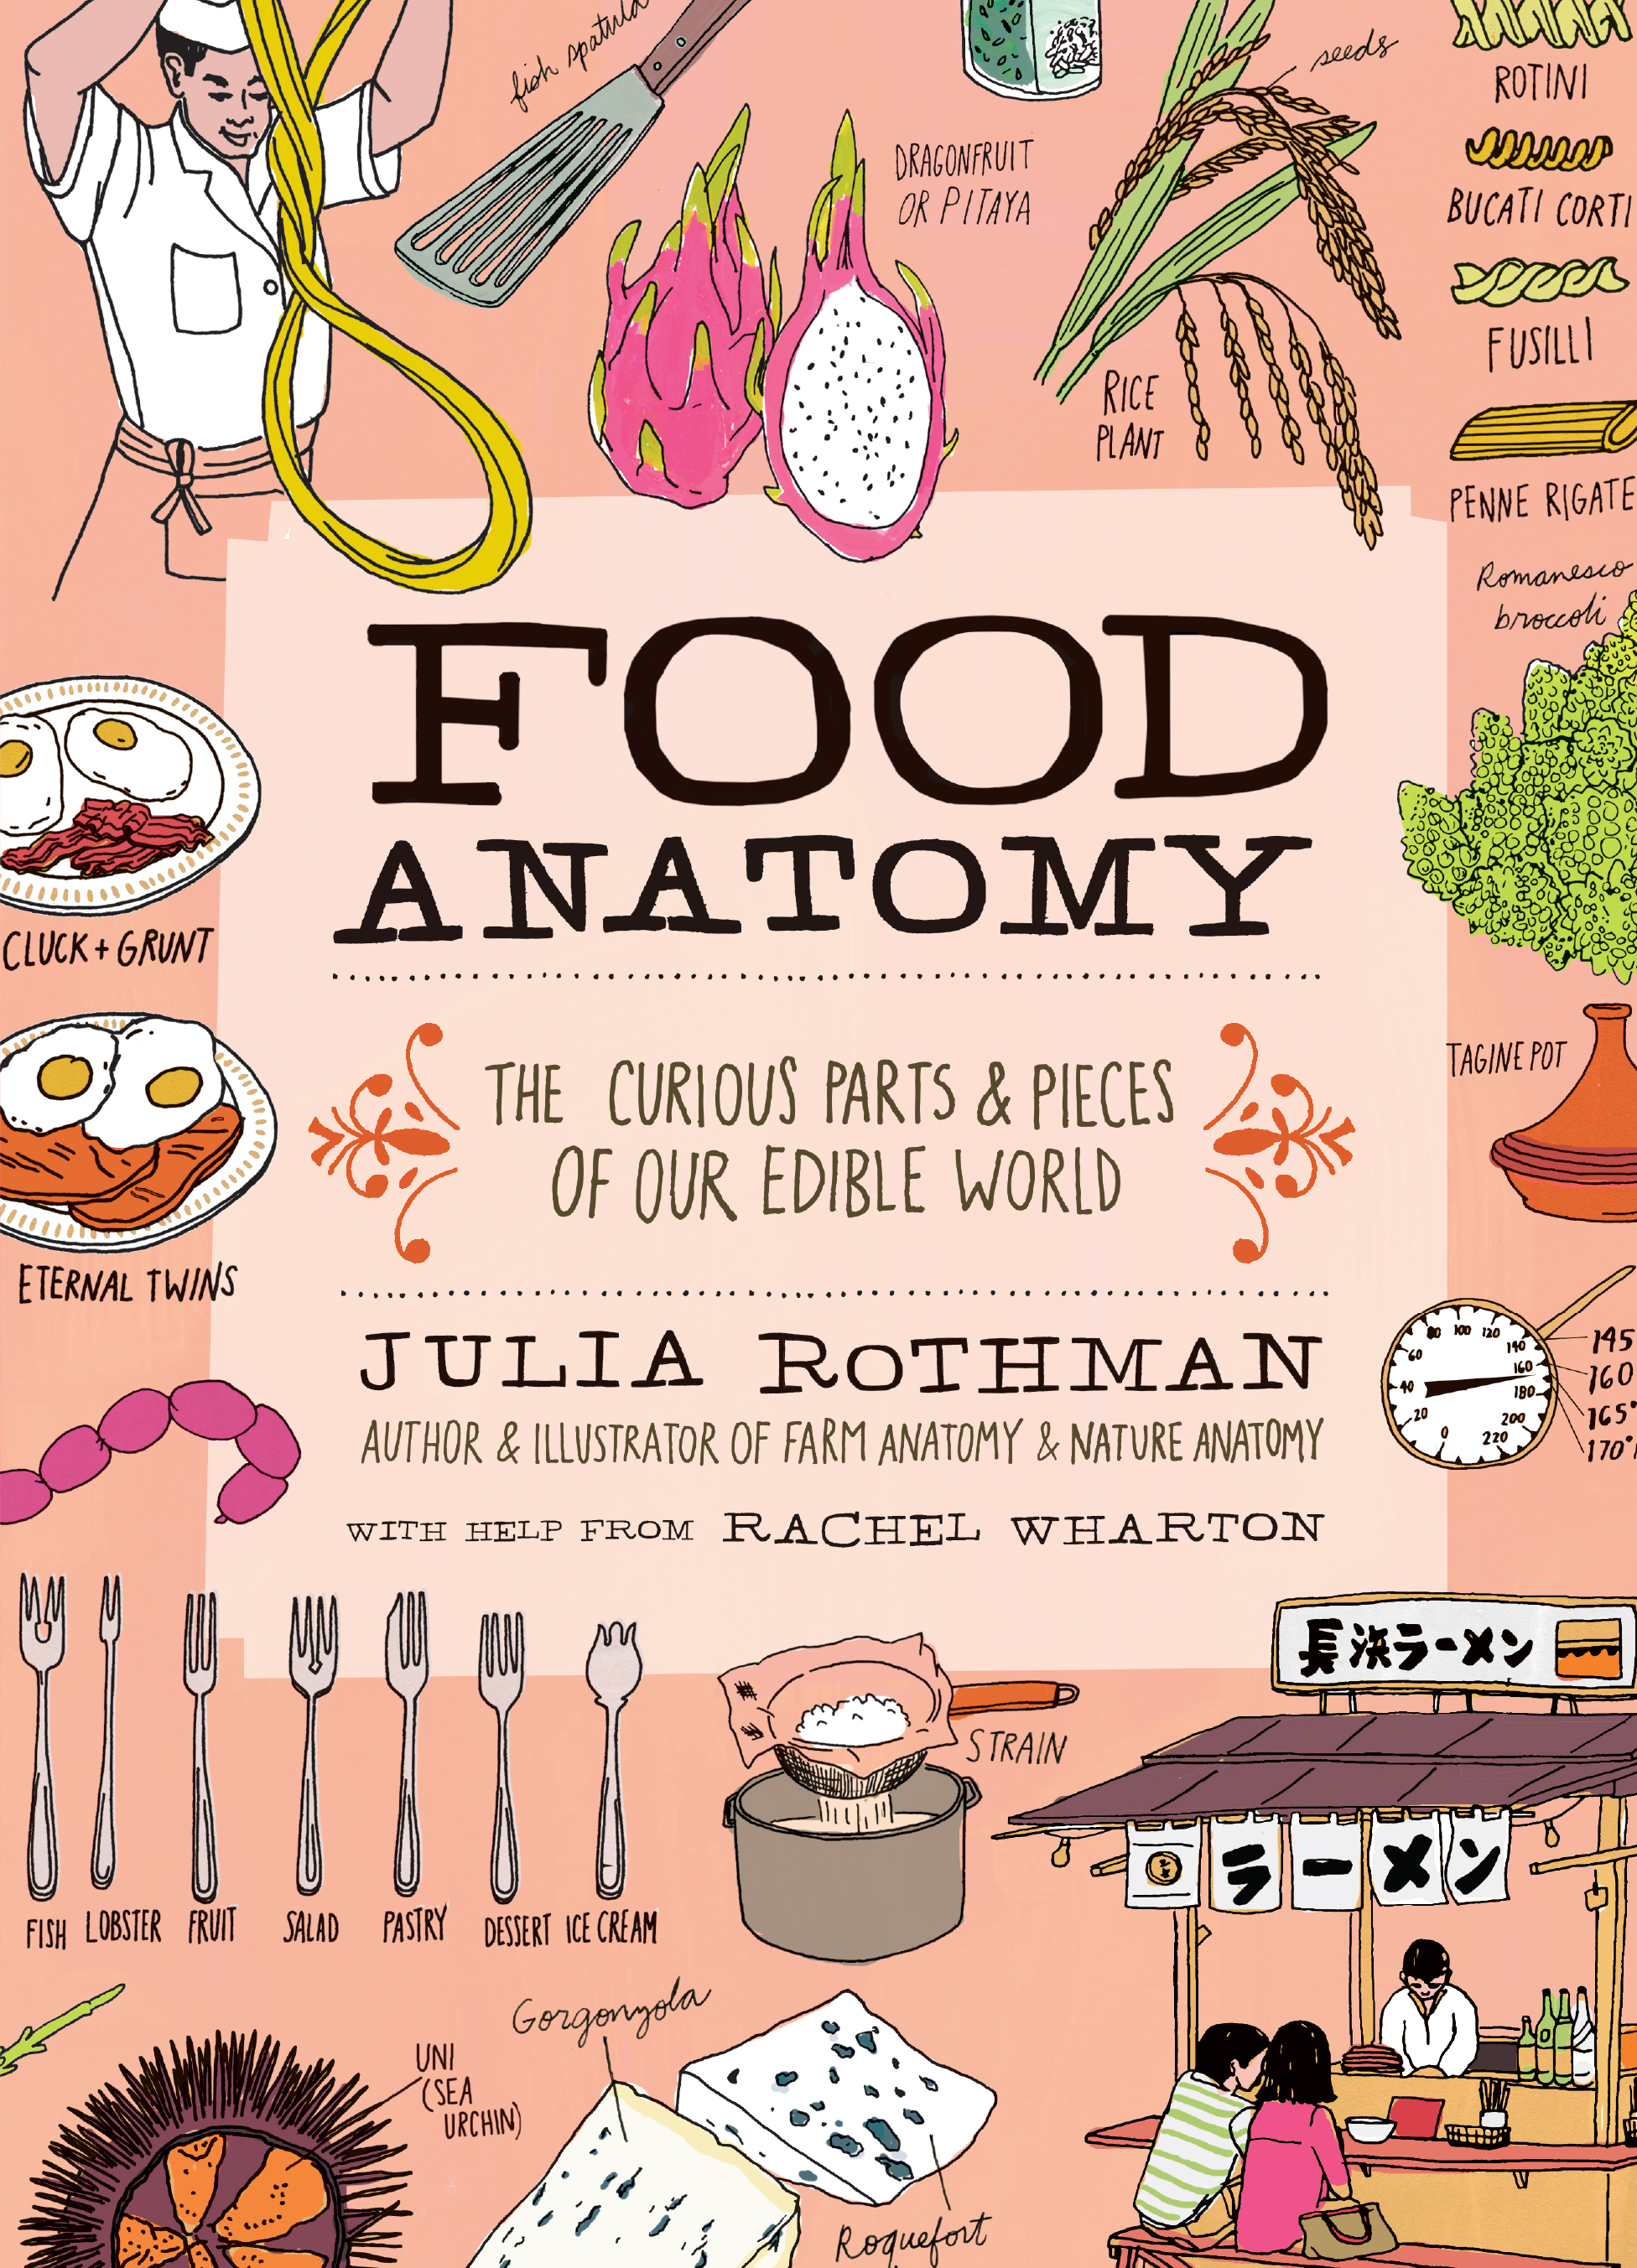 Food Anatomy The Curious Parts & Pieces of Our Edible World - Julia Rothman